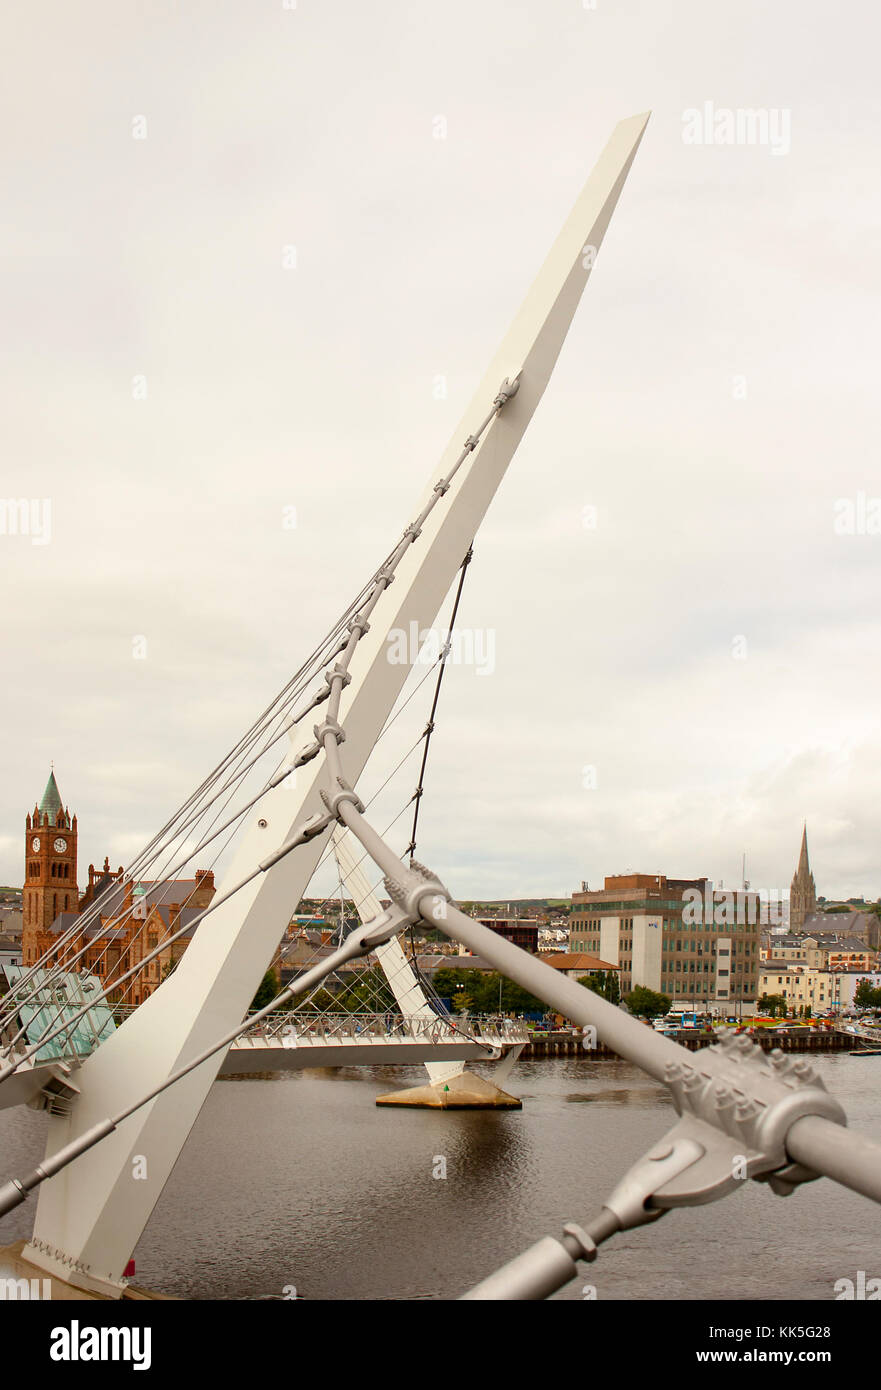 A close up ooof the steel structure of the iconic Peace Bridge over the river foyle in londonderry city in Northern - Stock Image